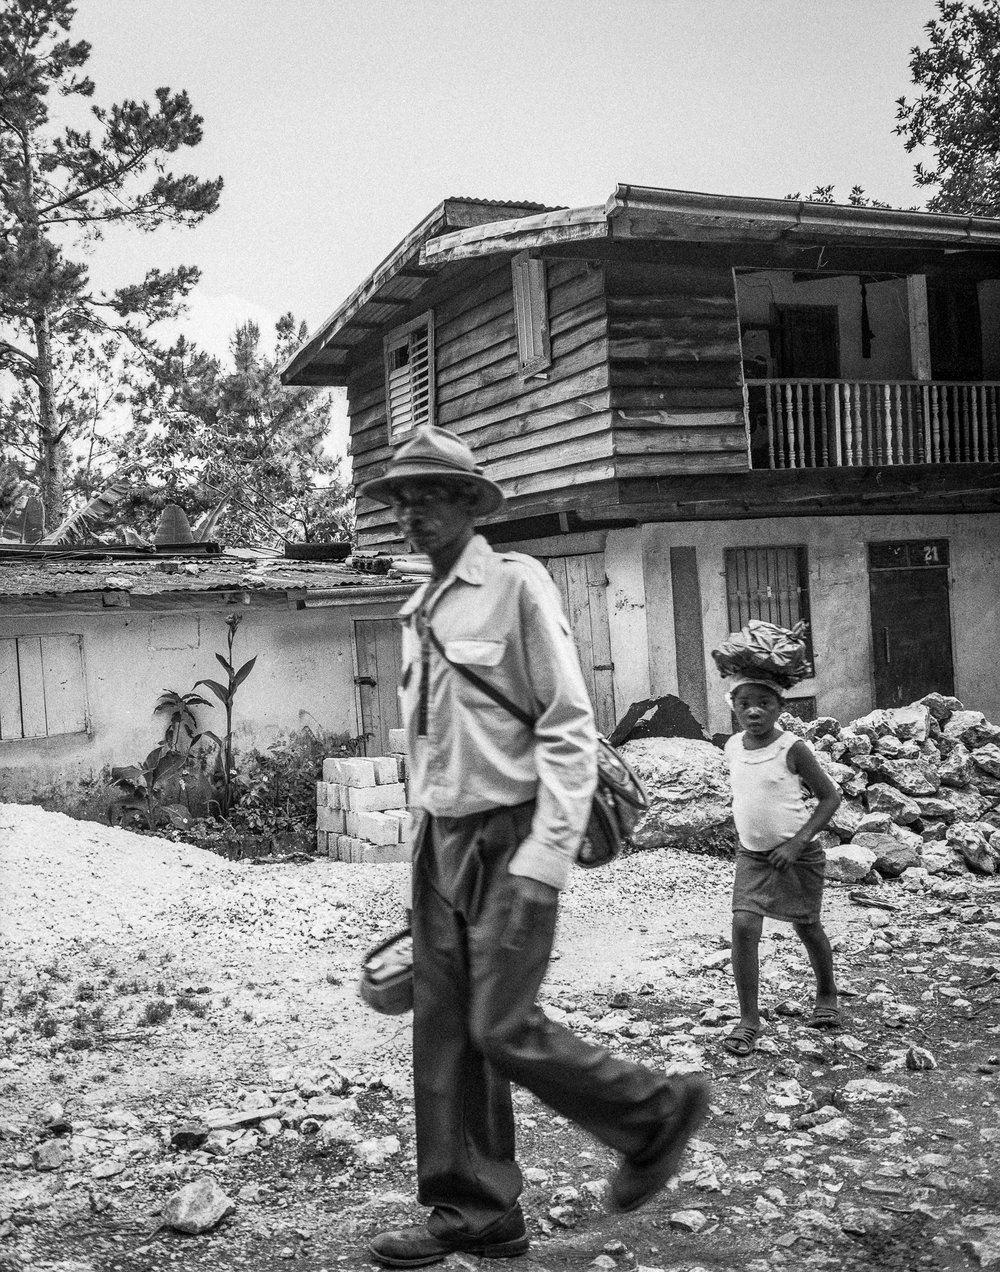 Man & Child-Haiti.jpg